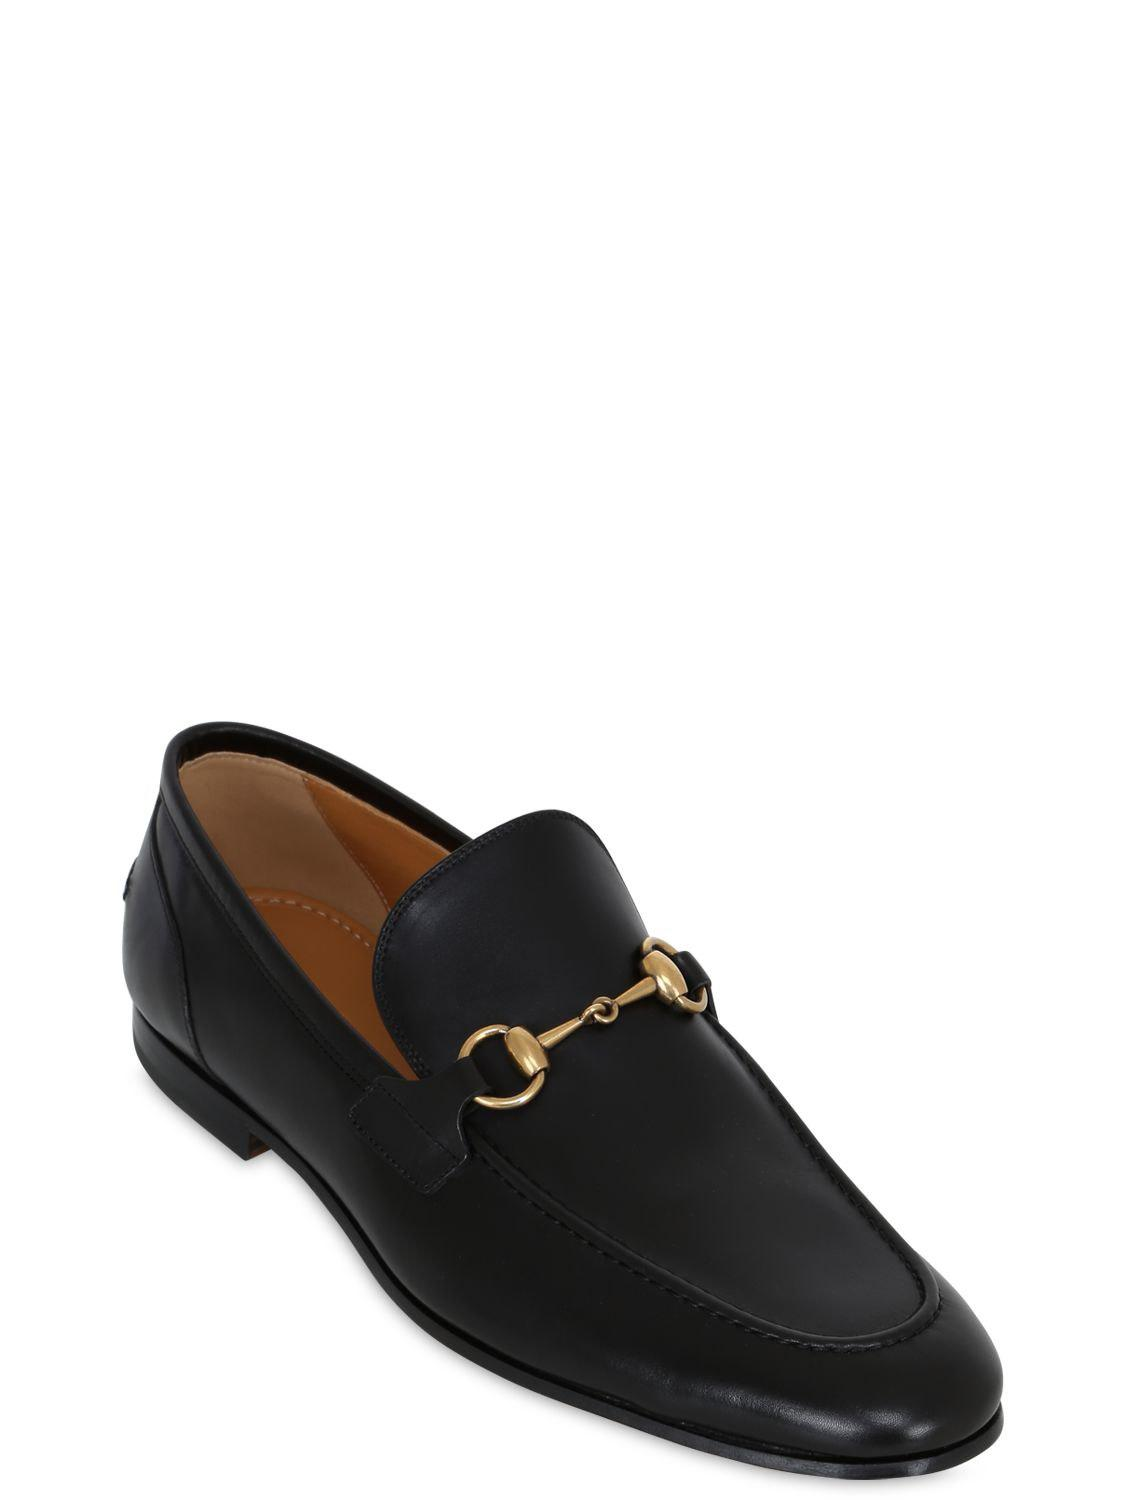 2895770dfb8 Lyst - Gucci Jordaan Horsebit Leather Loafers in Black for Men